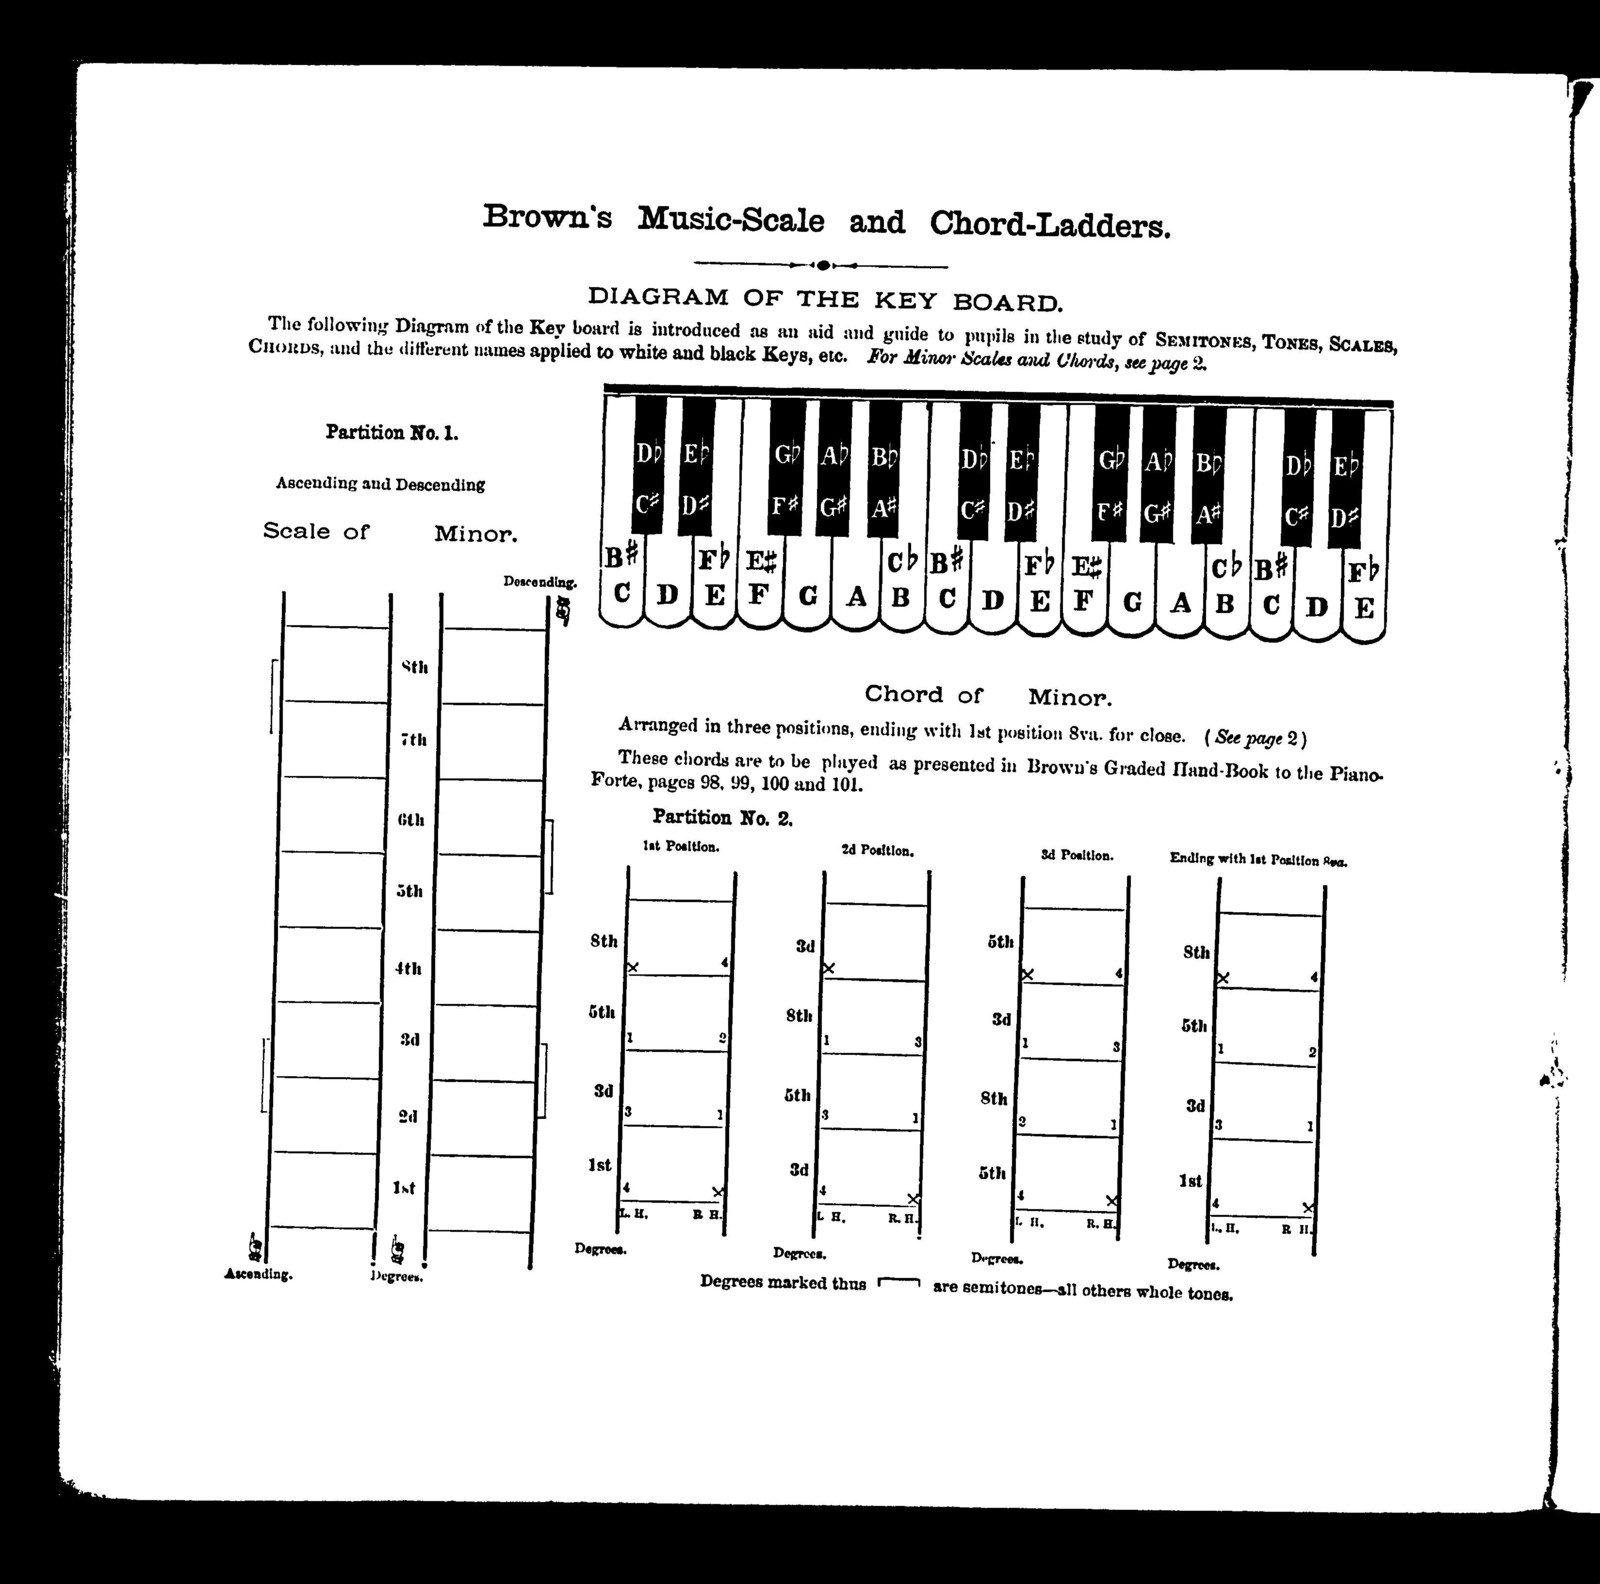 Brown's music-scale and chord-ladders